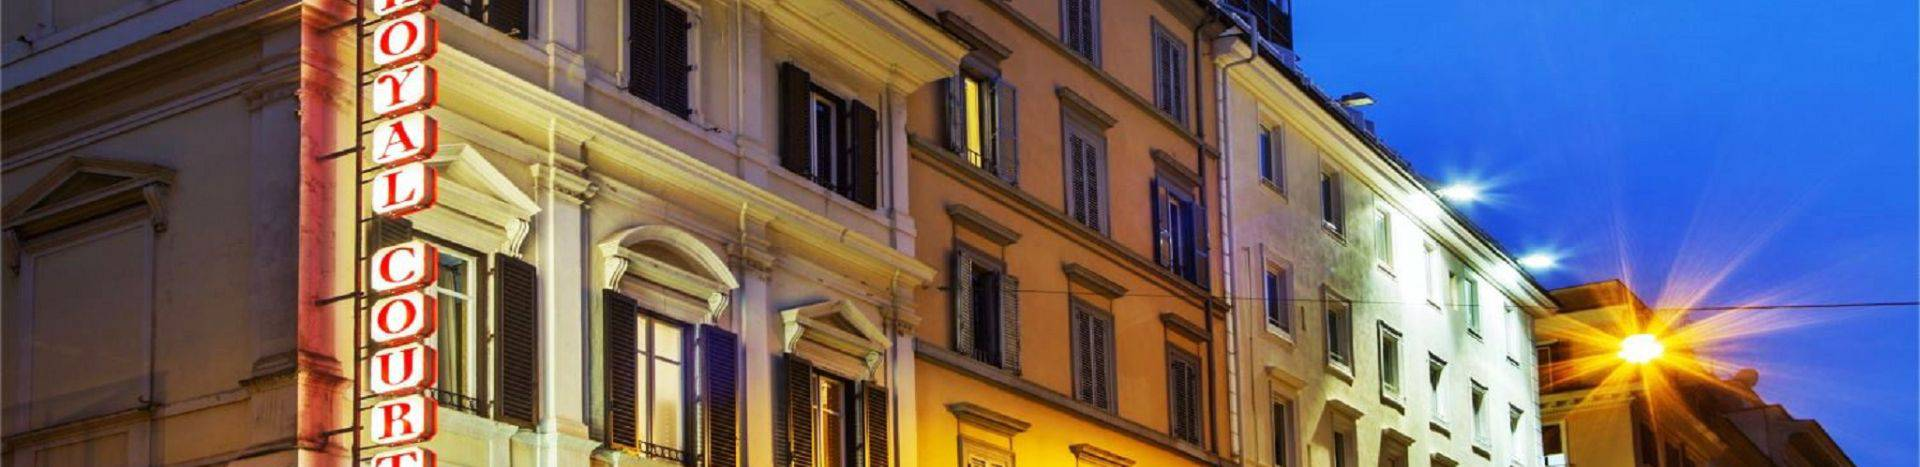 Space Hotels - ROMA -